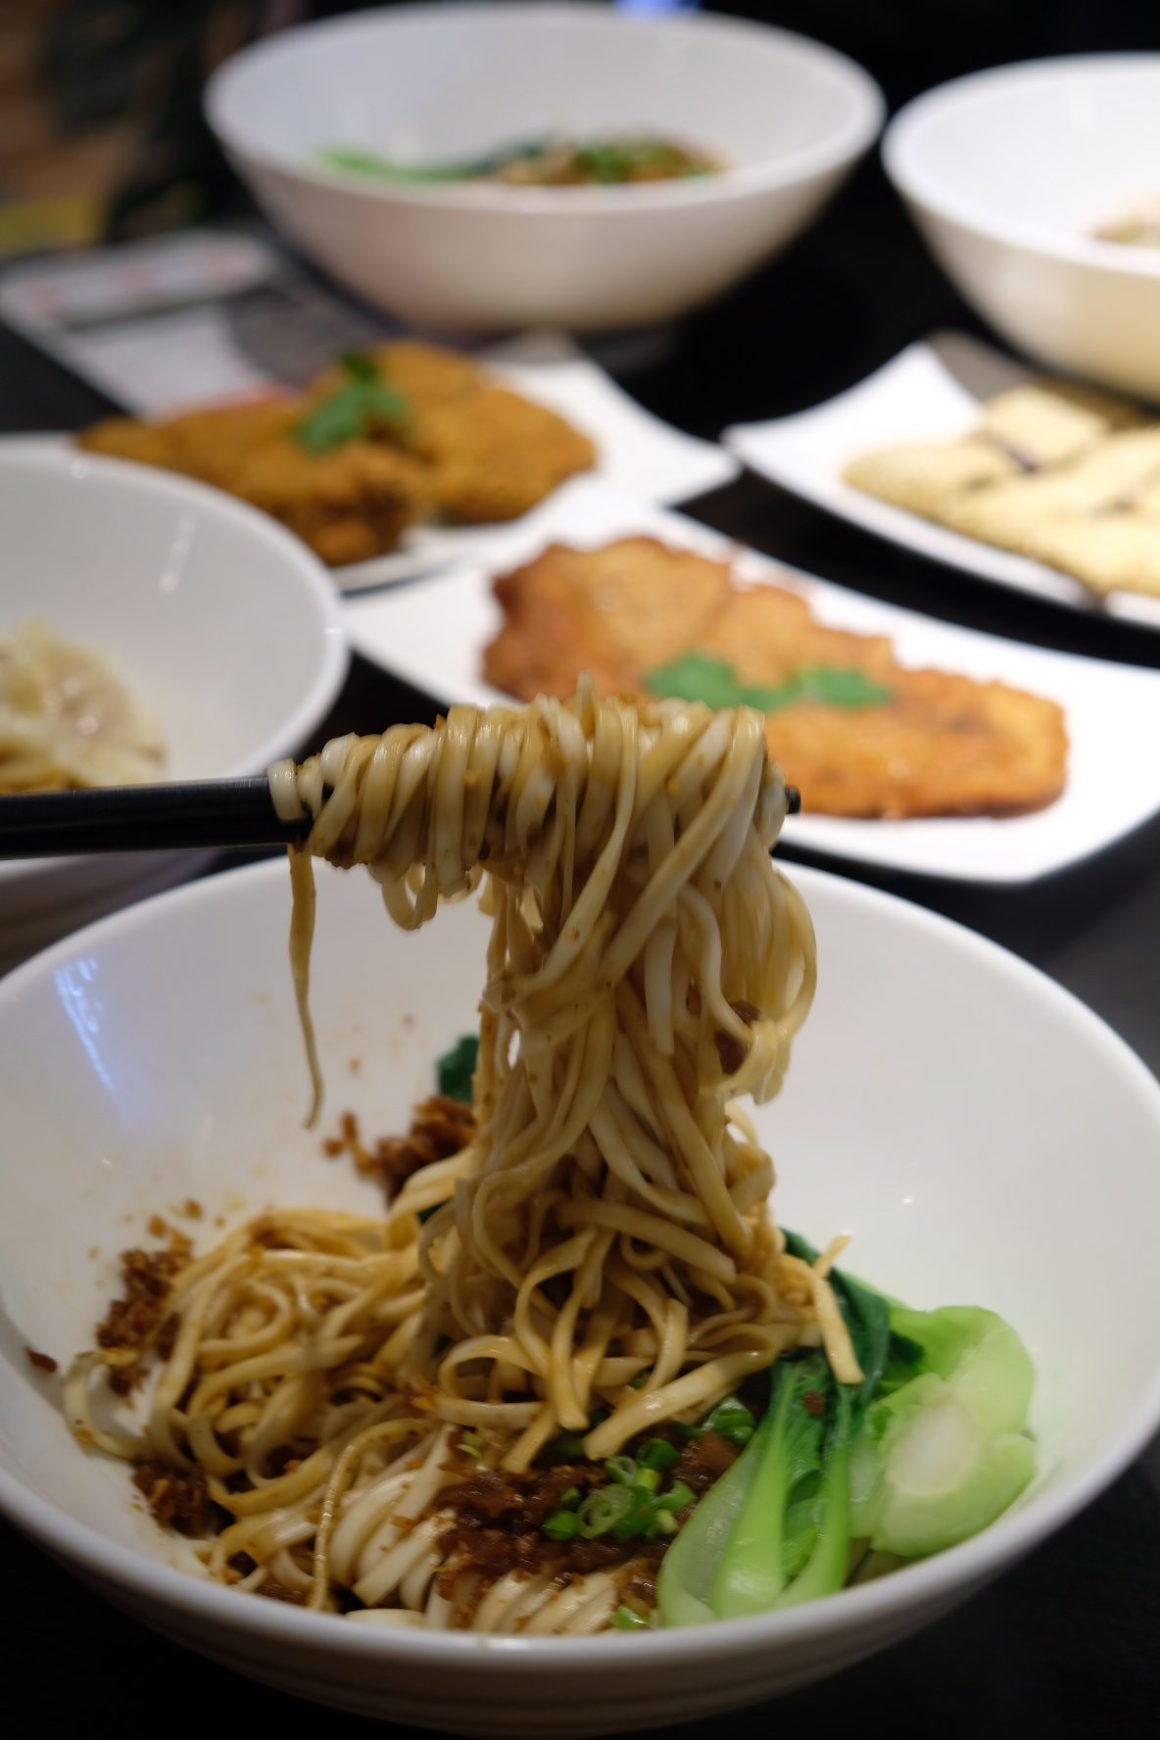 Dajia Noodles, Taiwan Top Noodles, Now Available At Ju Hao - Dajia Noodles